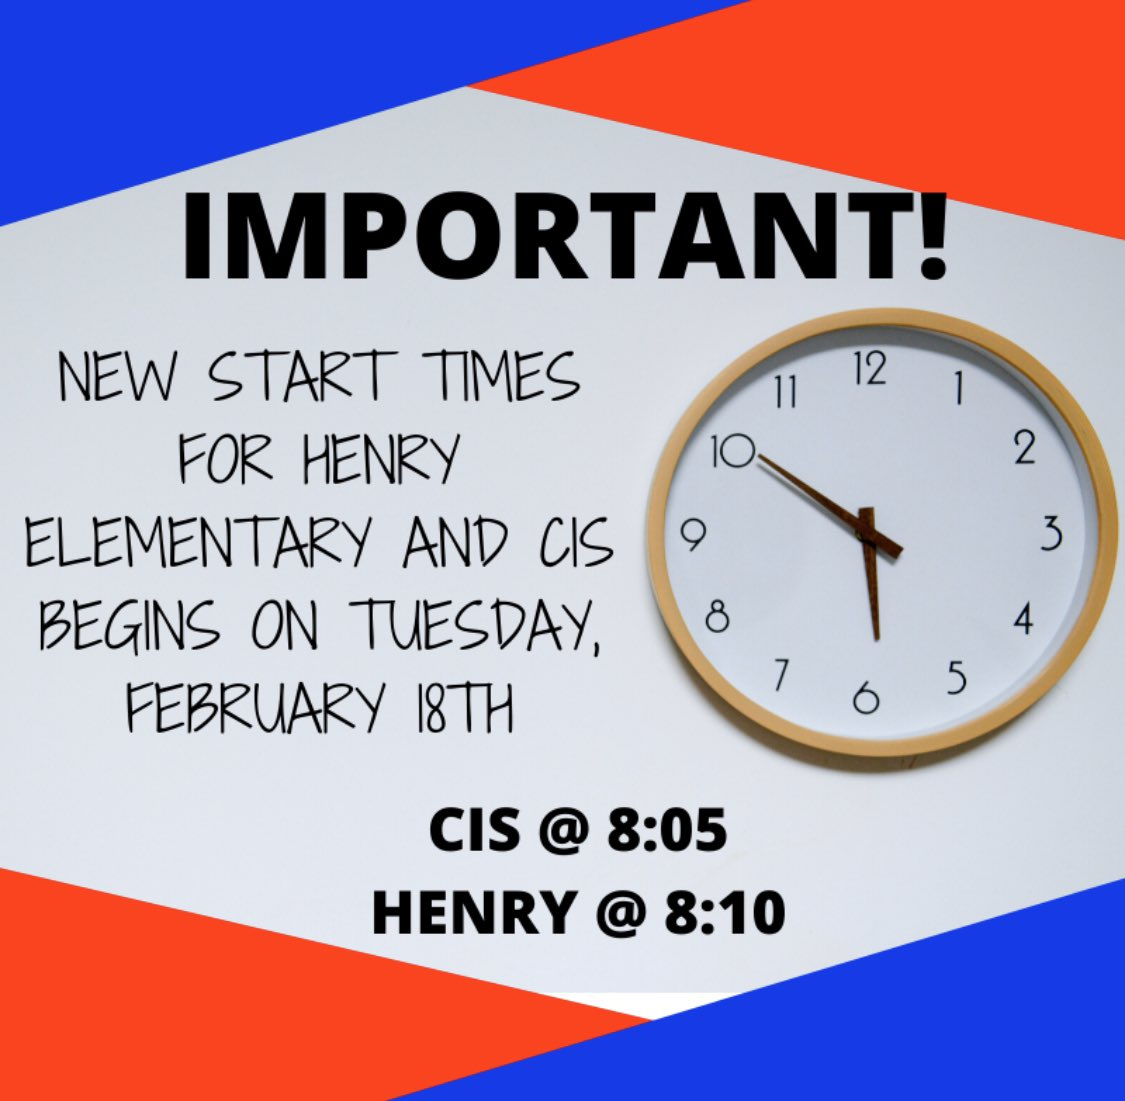 Don't forget that our new start time begins tomorrow!! https://t.co/MKlHP1BmI2